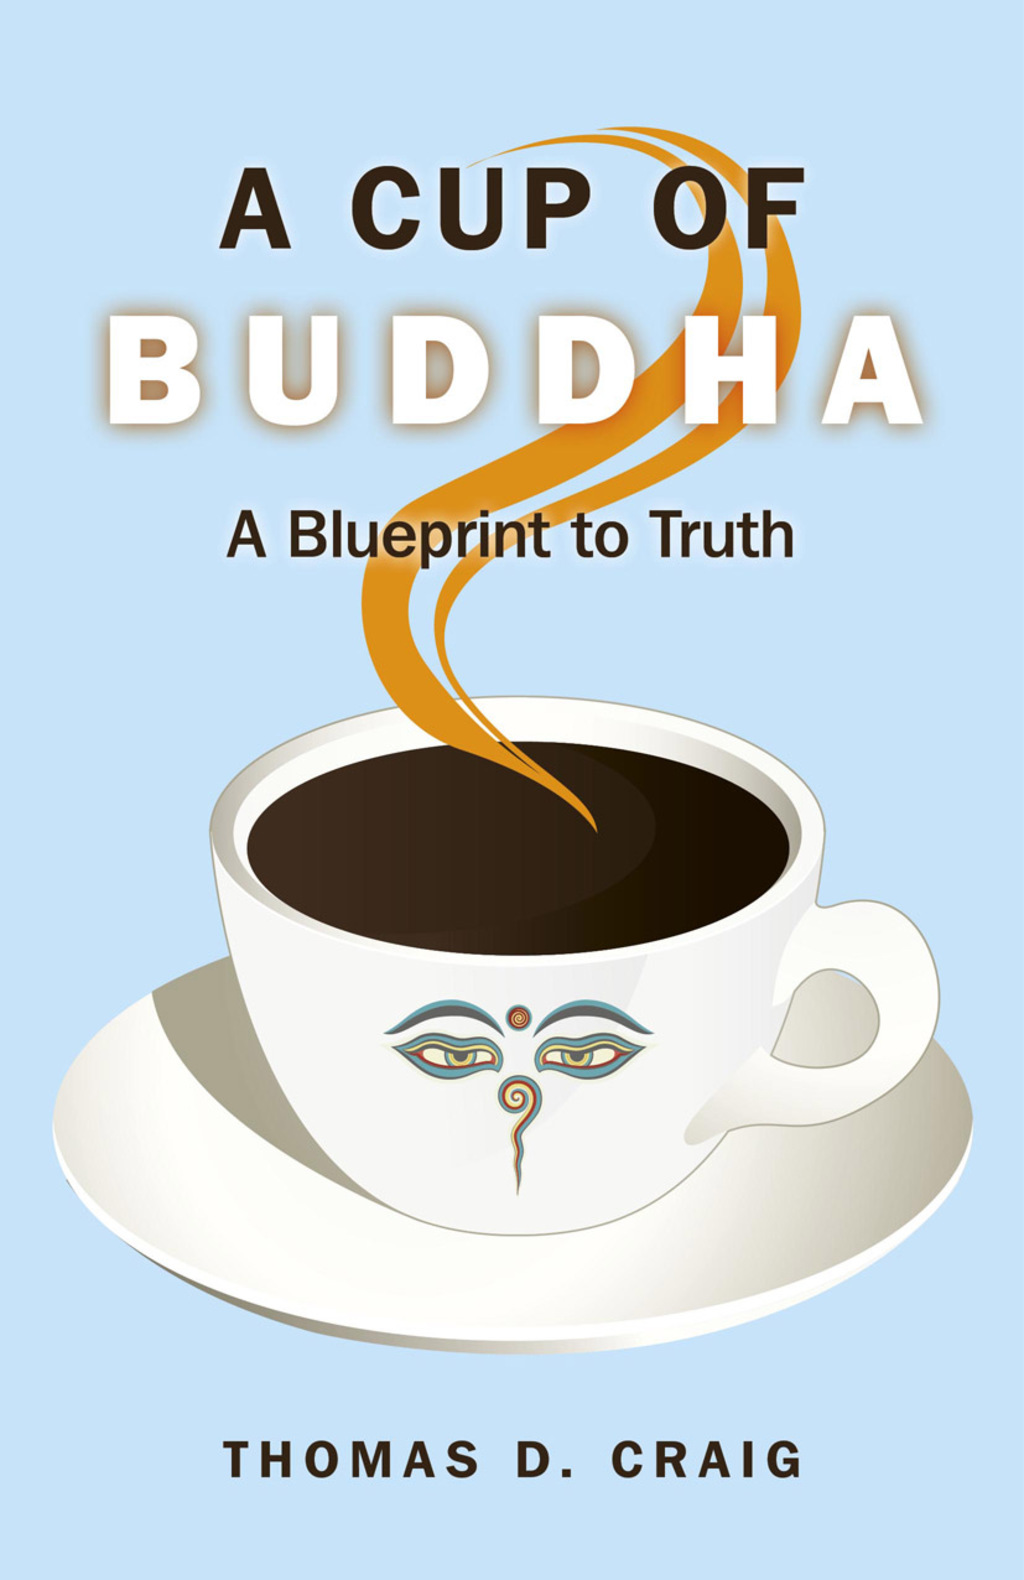 A Cup of Buddha: A Blueprint to Truth (ebook) eBooks